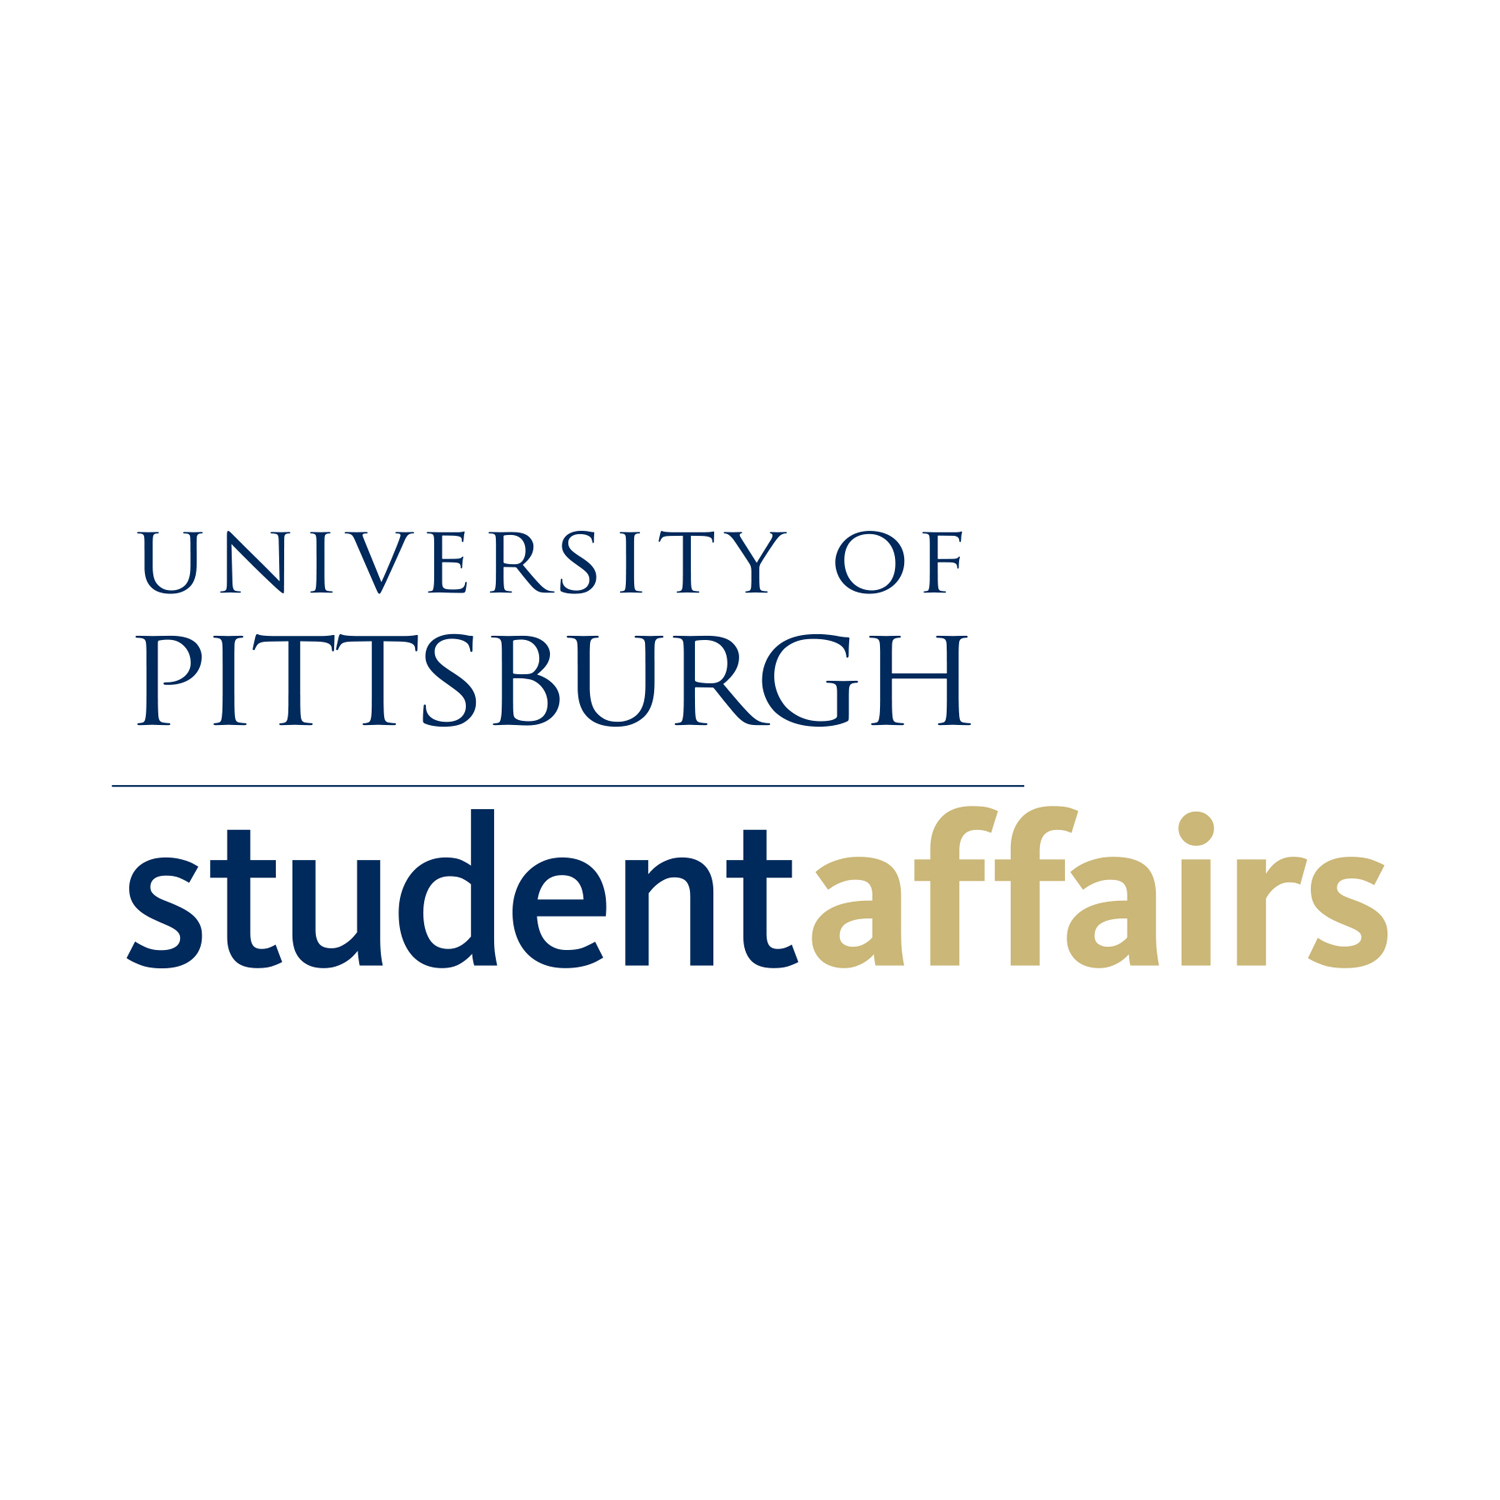 The Pitt student activity fee will increase for the first time in 15 years.